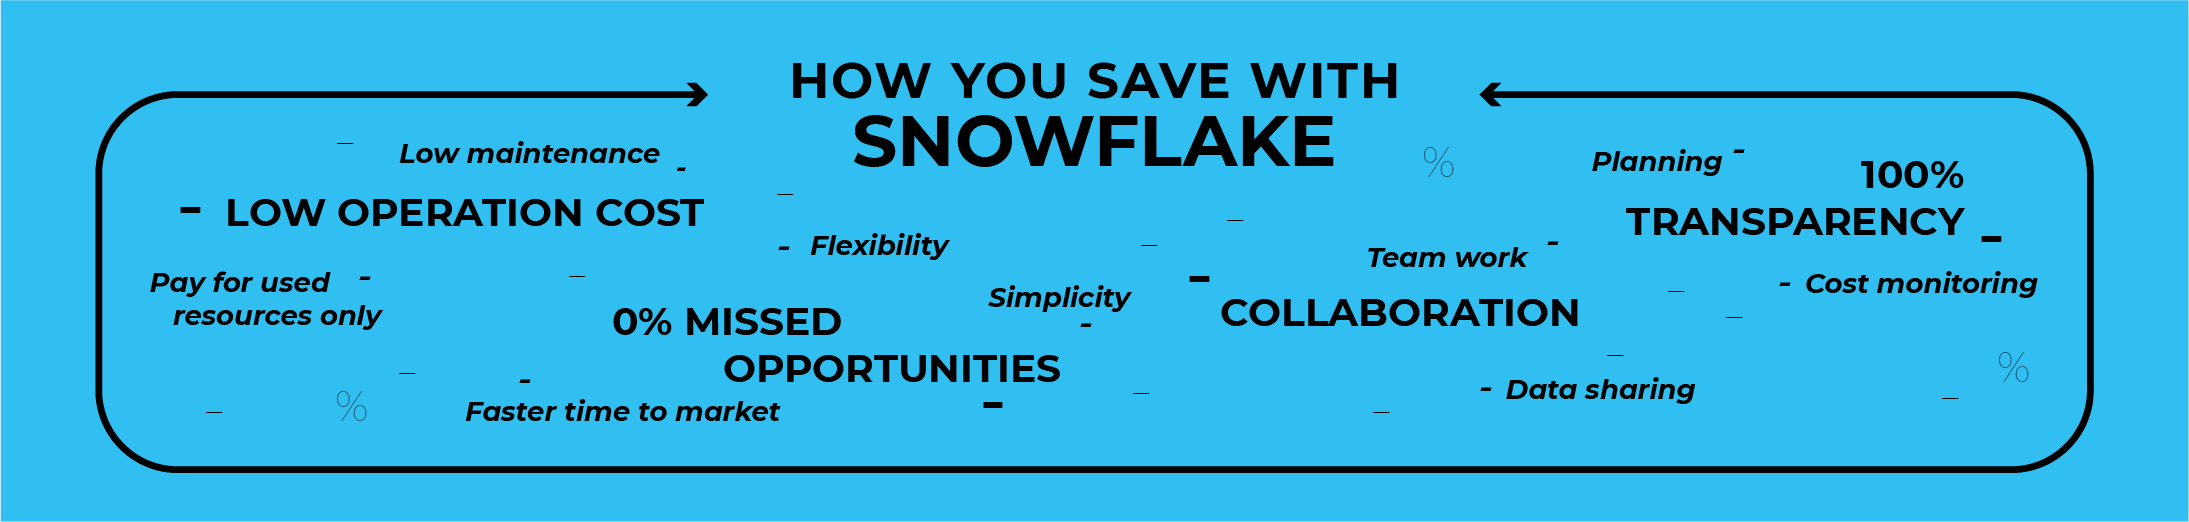 save-with-snowflake